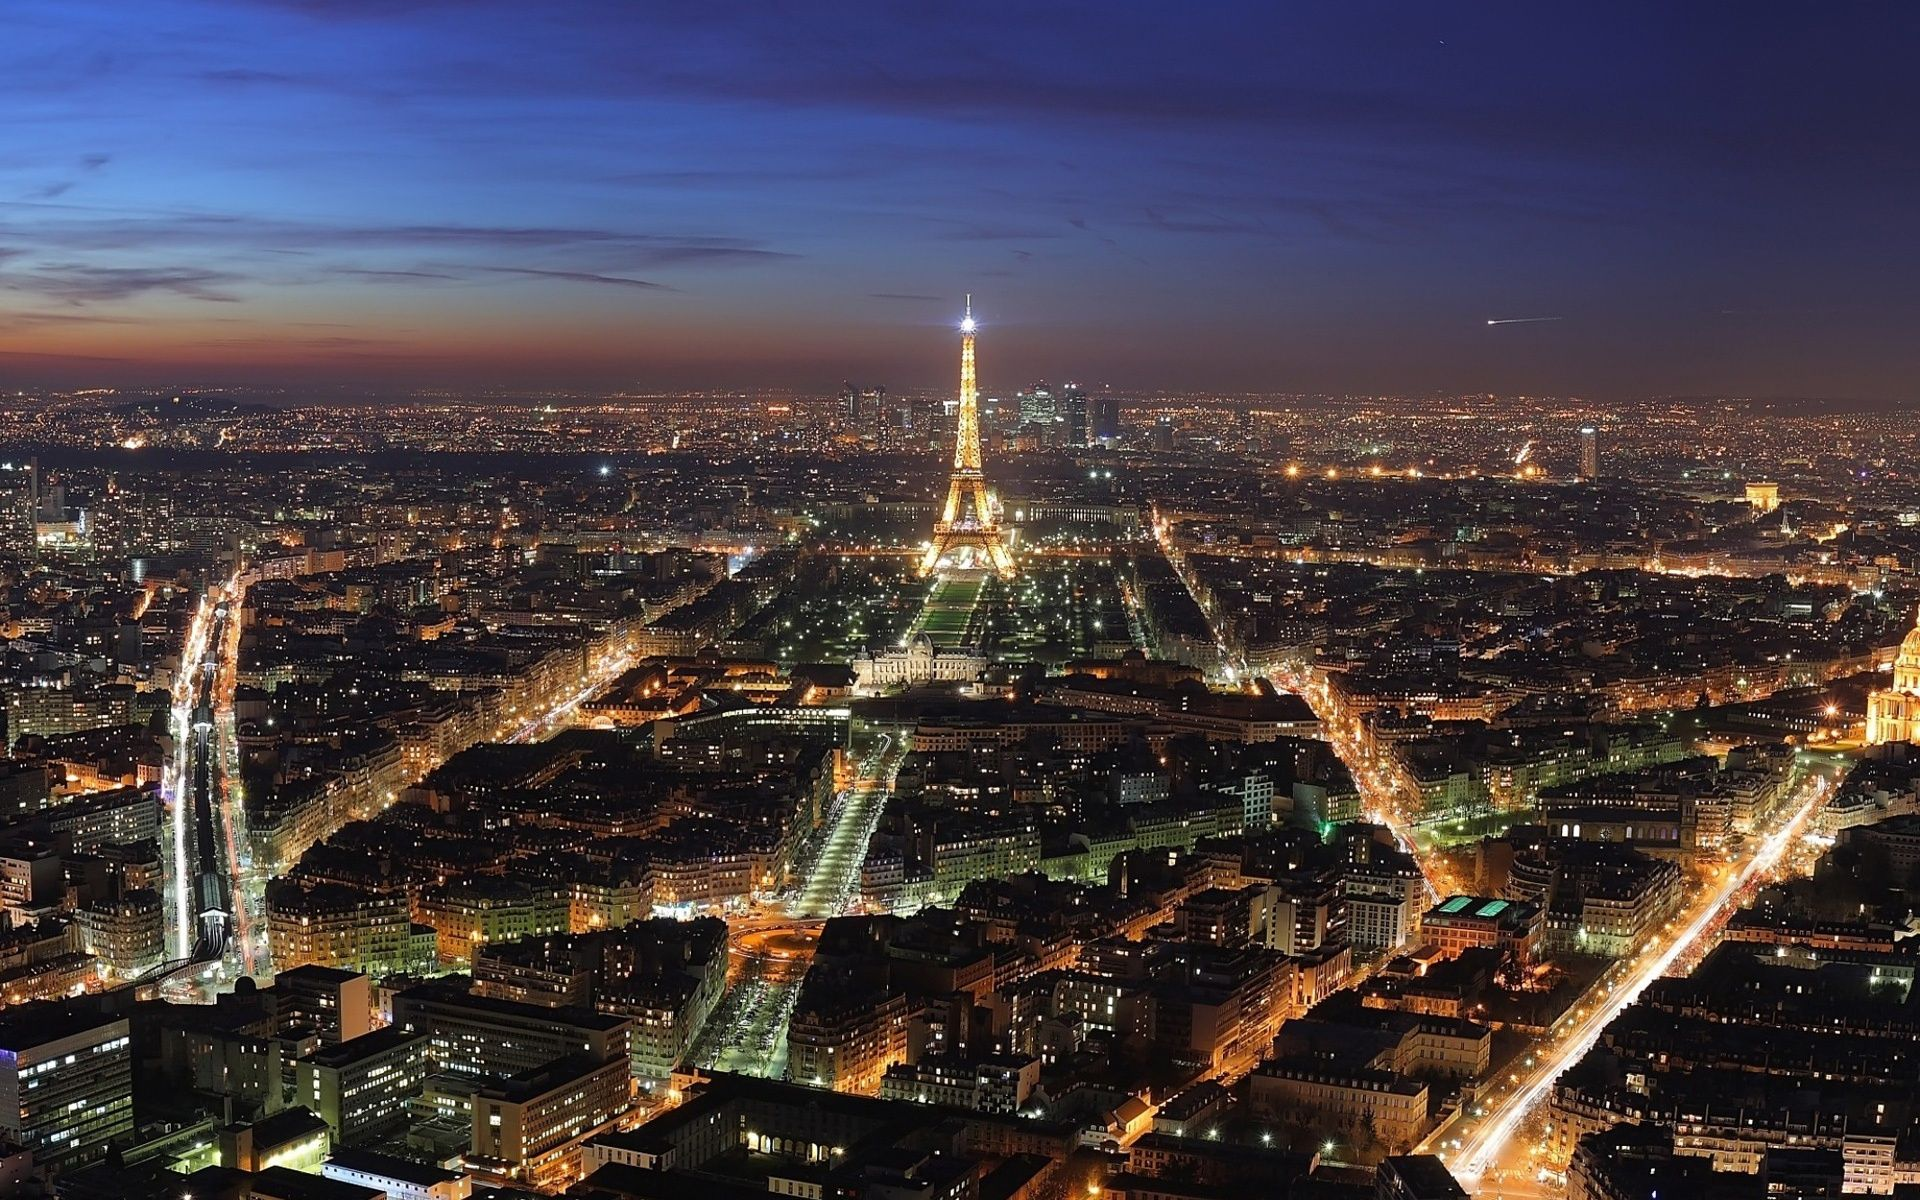 Paris City at Night wallpaper